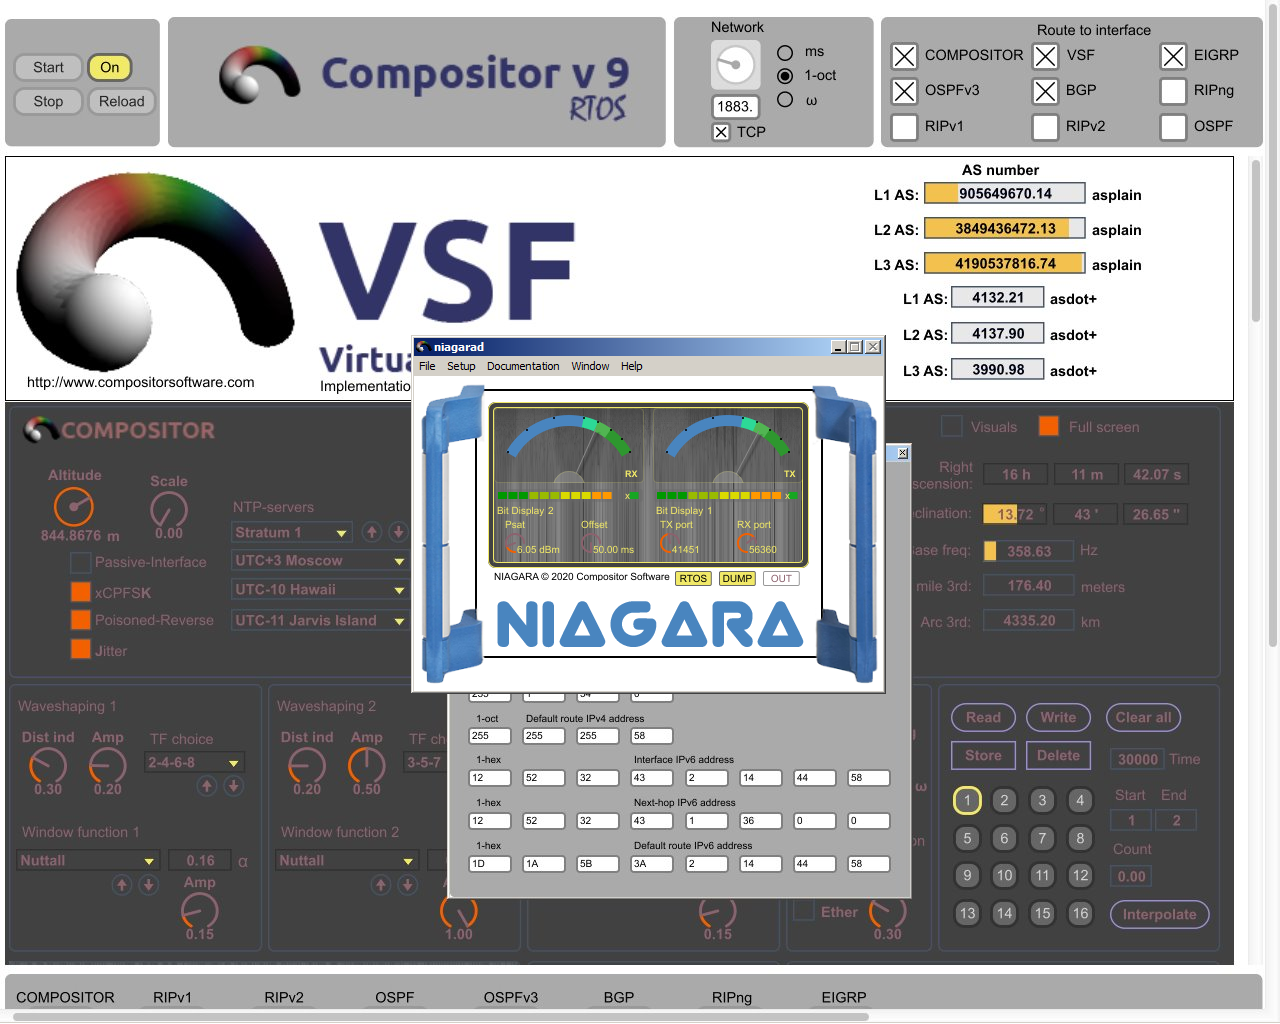 Niagara 18 software modem in front of Compositor RTOS 9.0.2